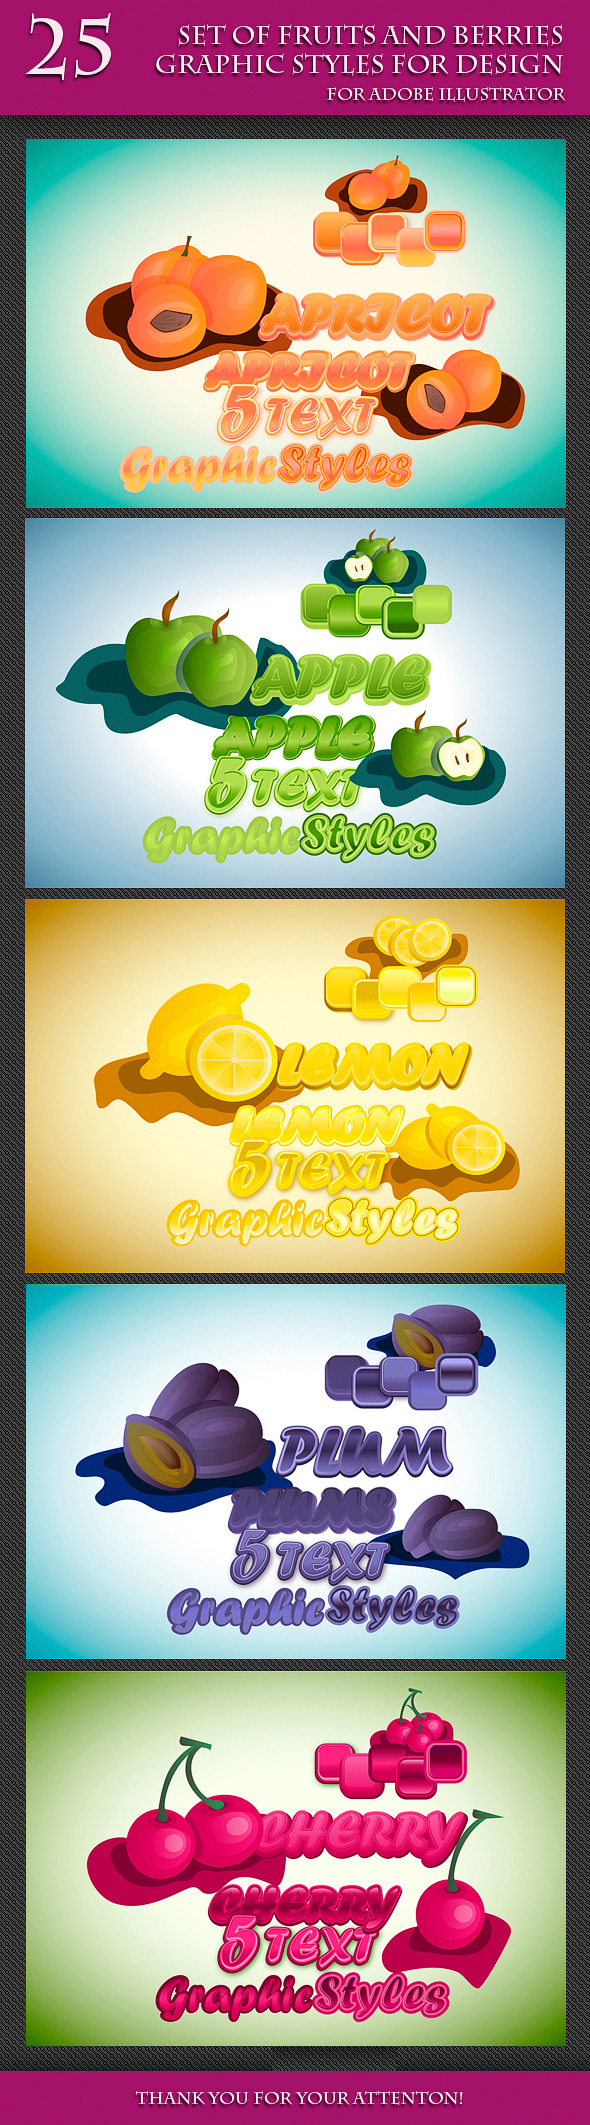 GraphicRiver Set of Fruits and Berries Graphic Styles 10684254